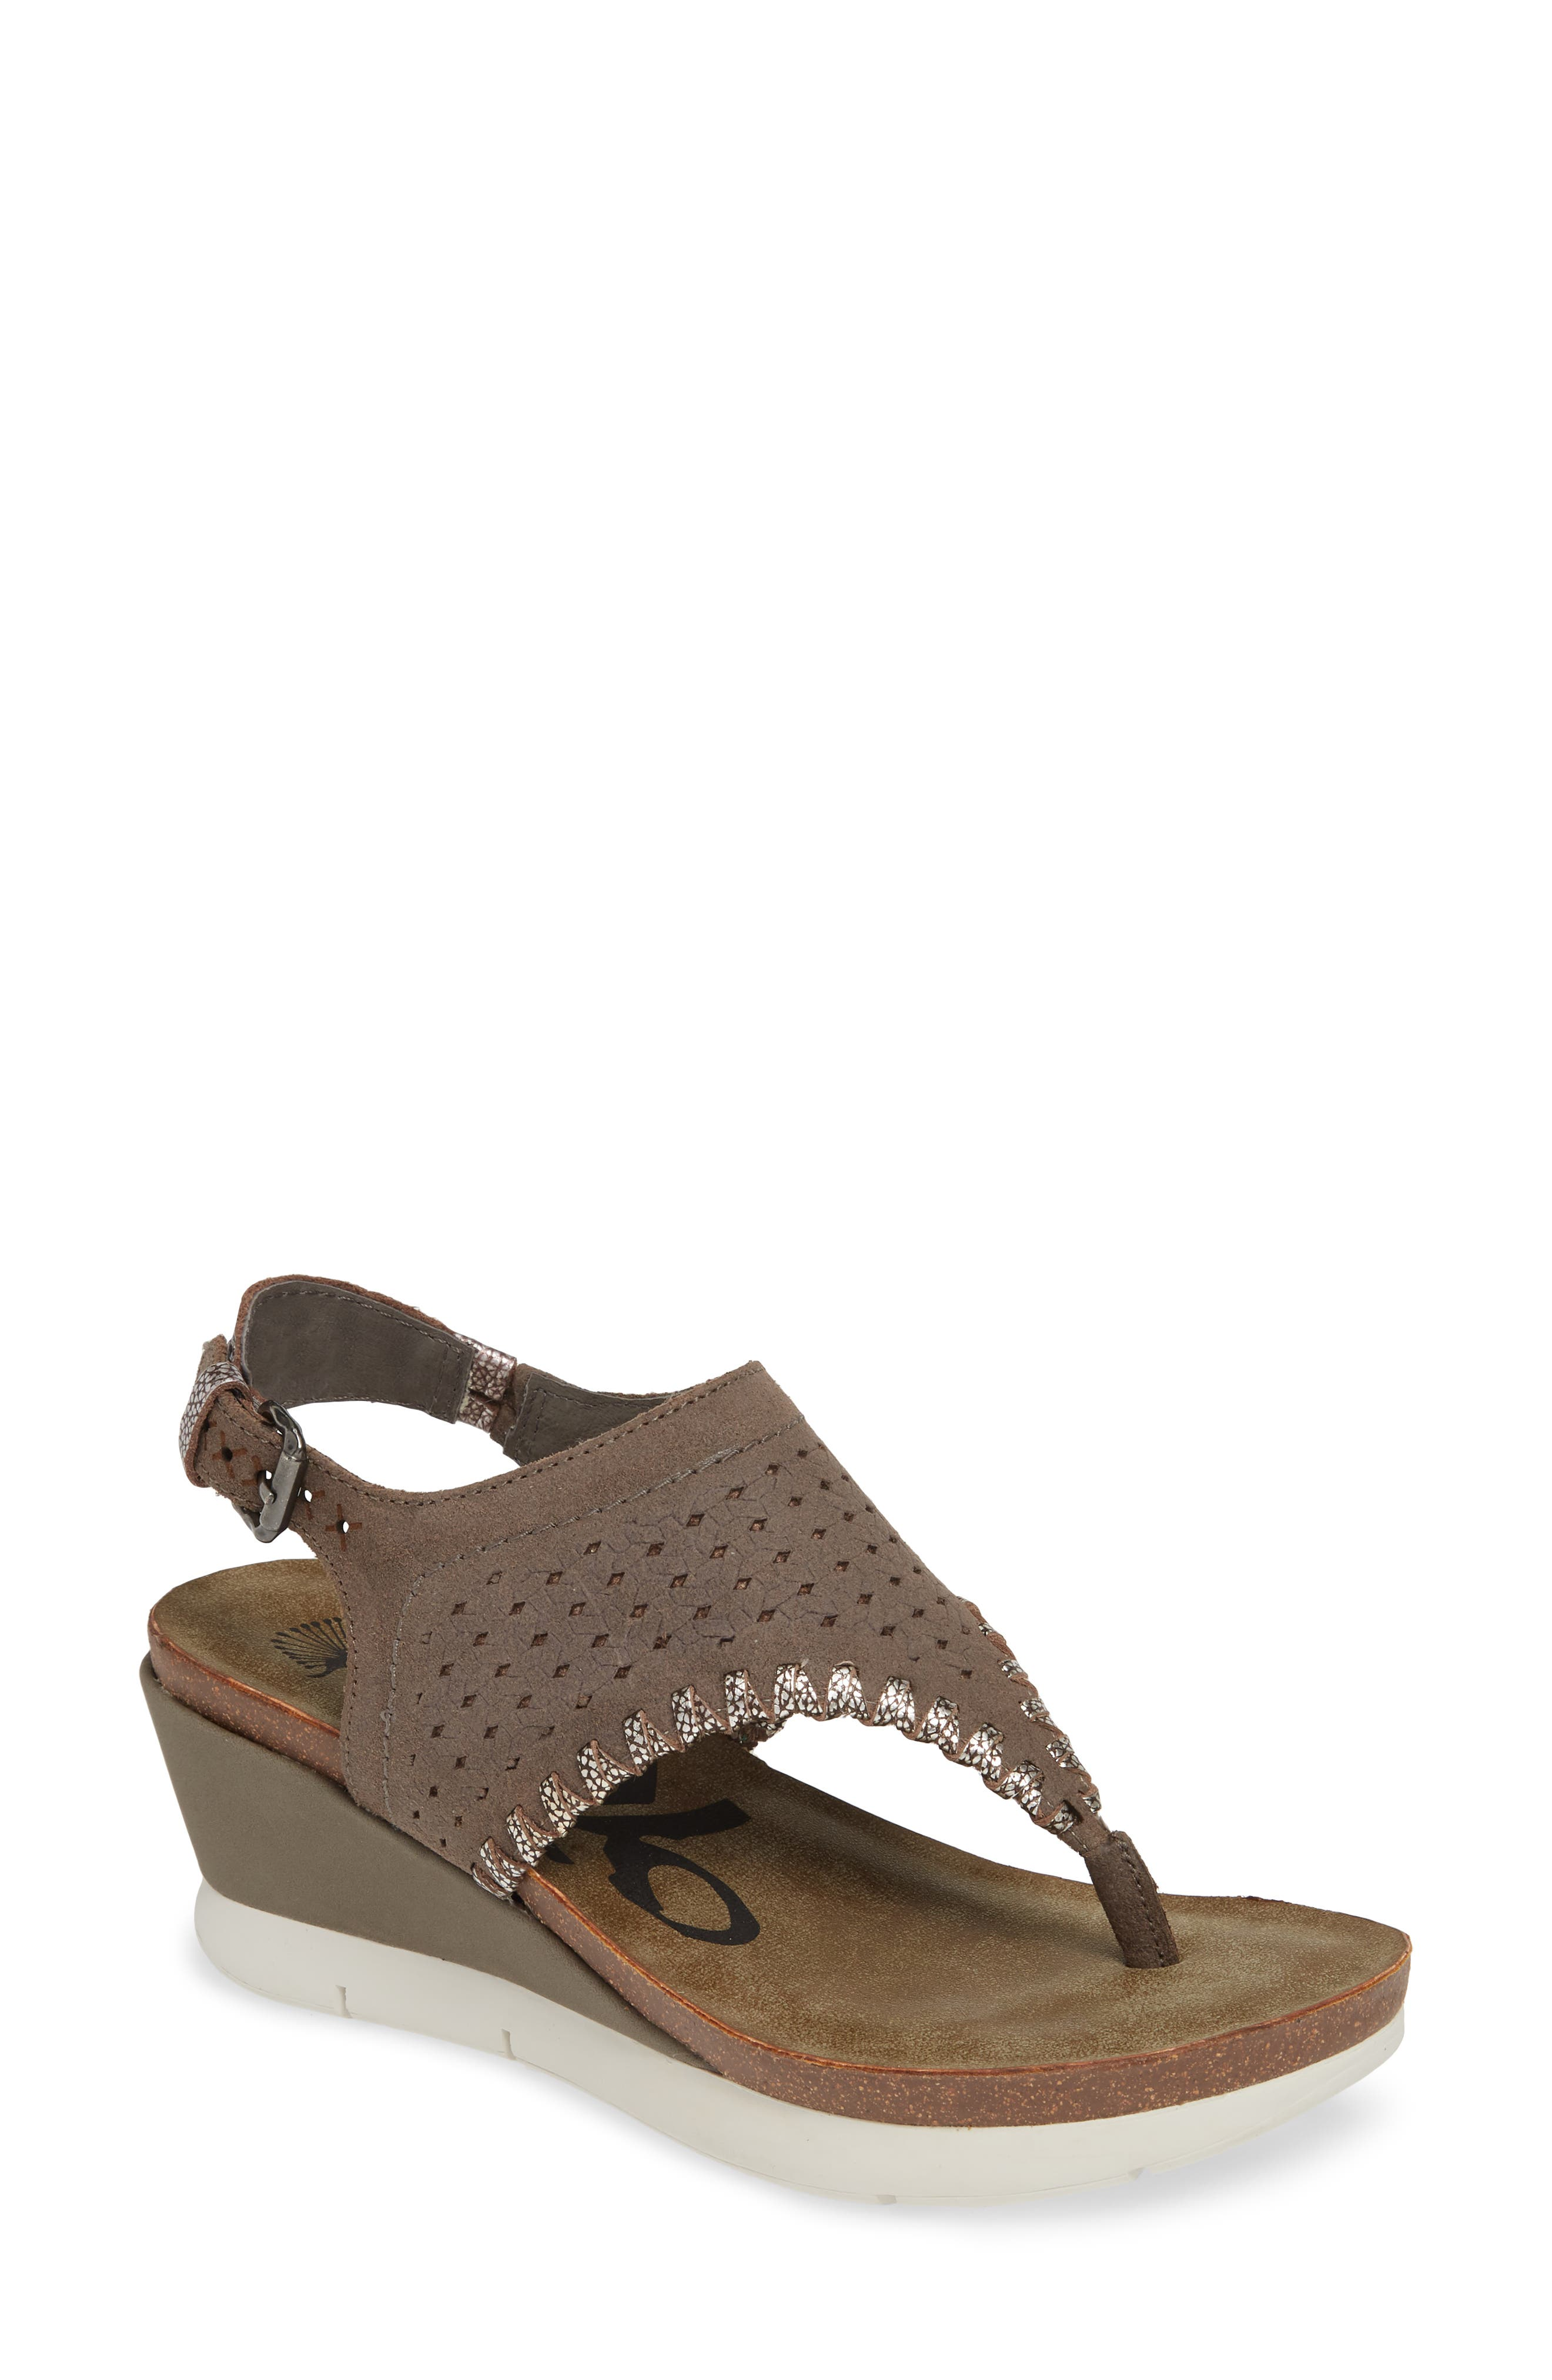 Tooled, whipstitch-outlined straps with an antiqued finish add to the old-world charm of a comfortable wedge sandal made with slip-resistant treads. Style Name: Otbt Meditate Wedge Sandal (Women). Style Number: 5517893 3. Available in stores.